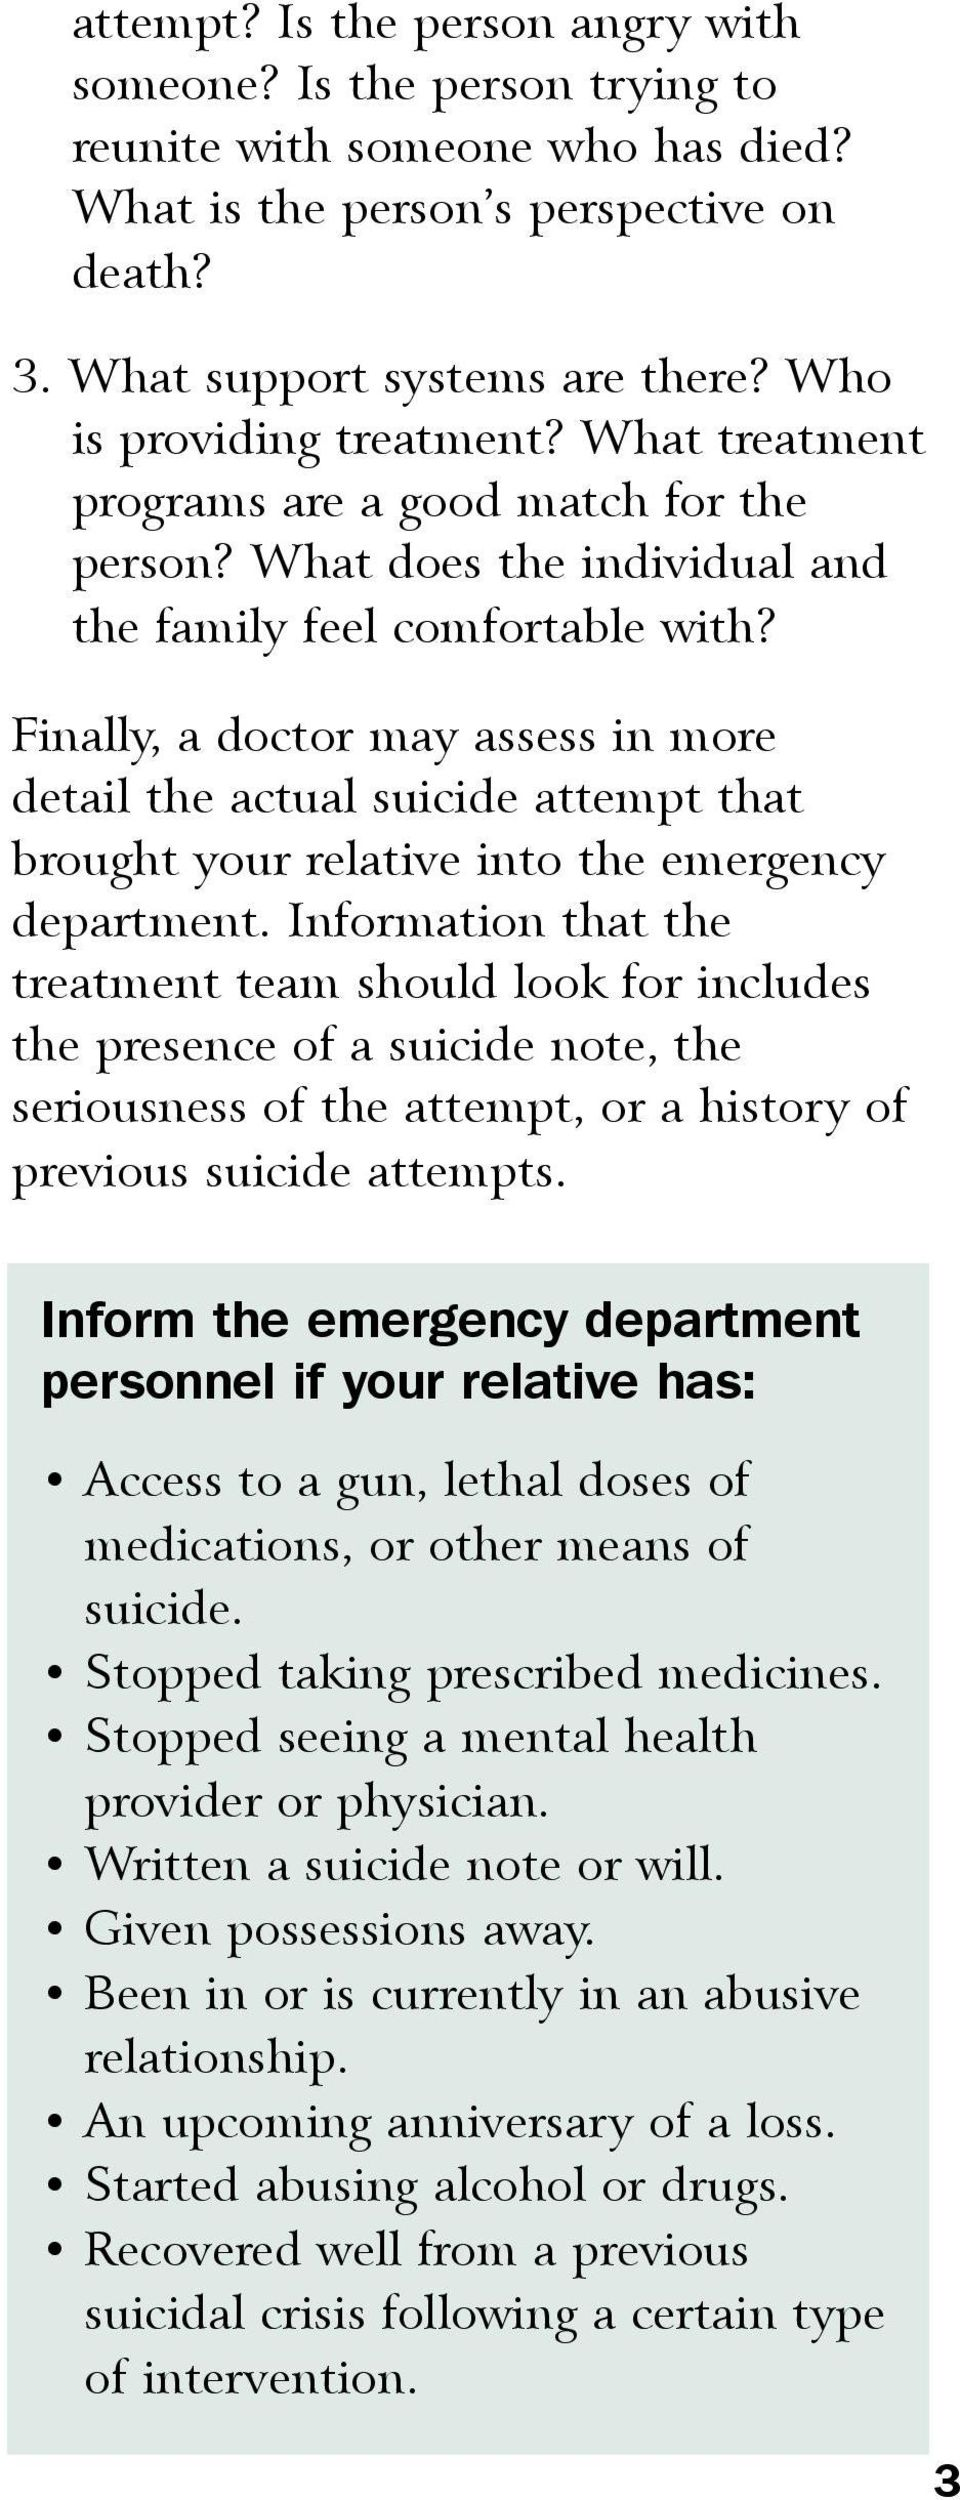 Finally, a doctor may assess in more detail the actual suicide attempt that brought your relative into the emergency department.